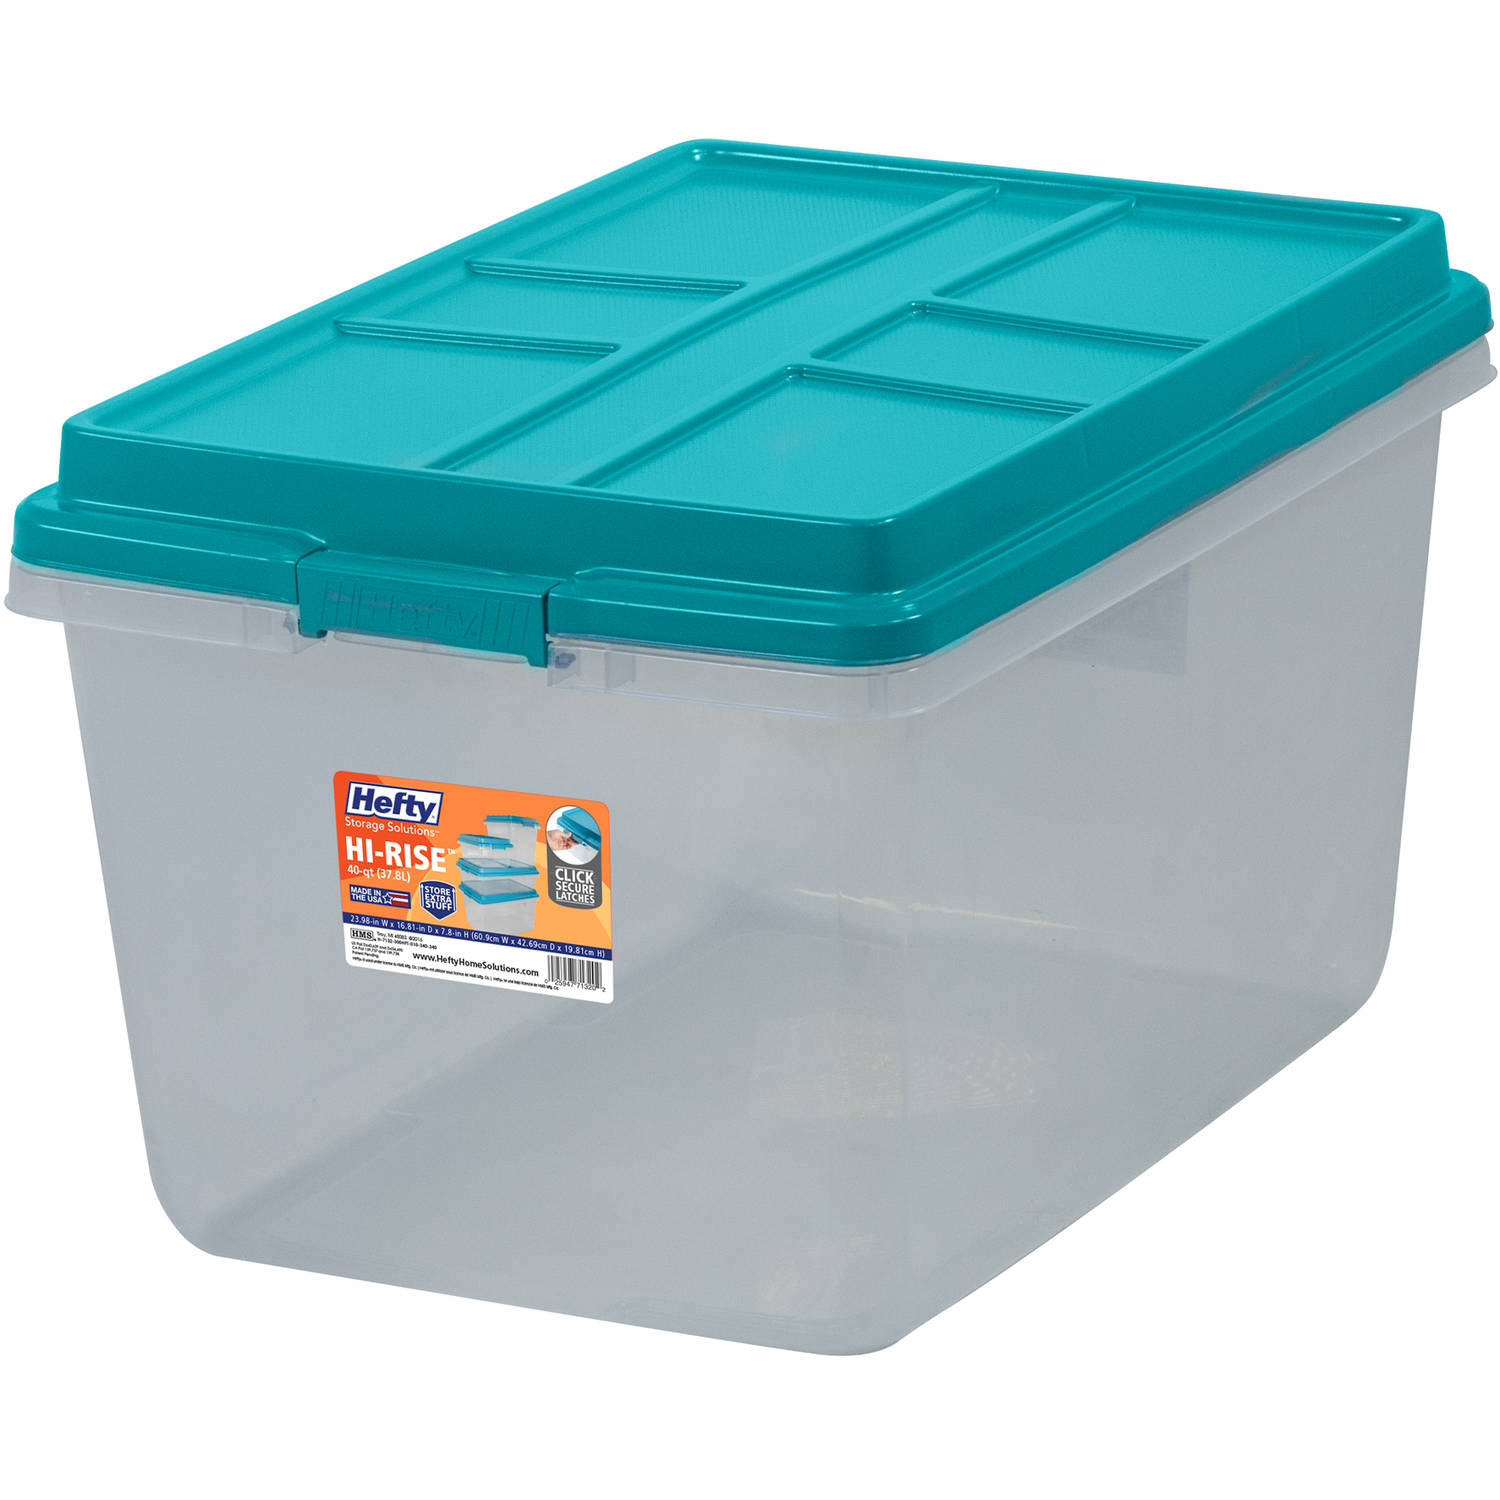 Hefty 72-Qt Hi-Rise Clear Latch Box, Teal Sachet Lid and Handles